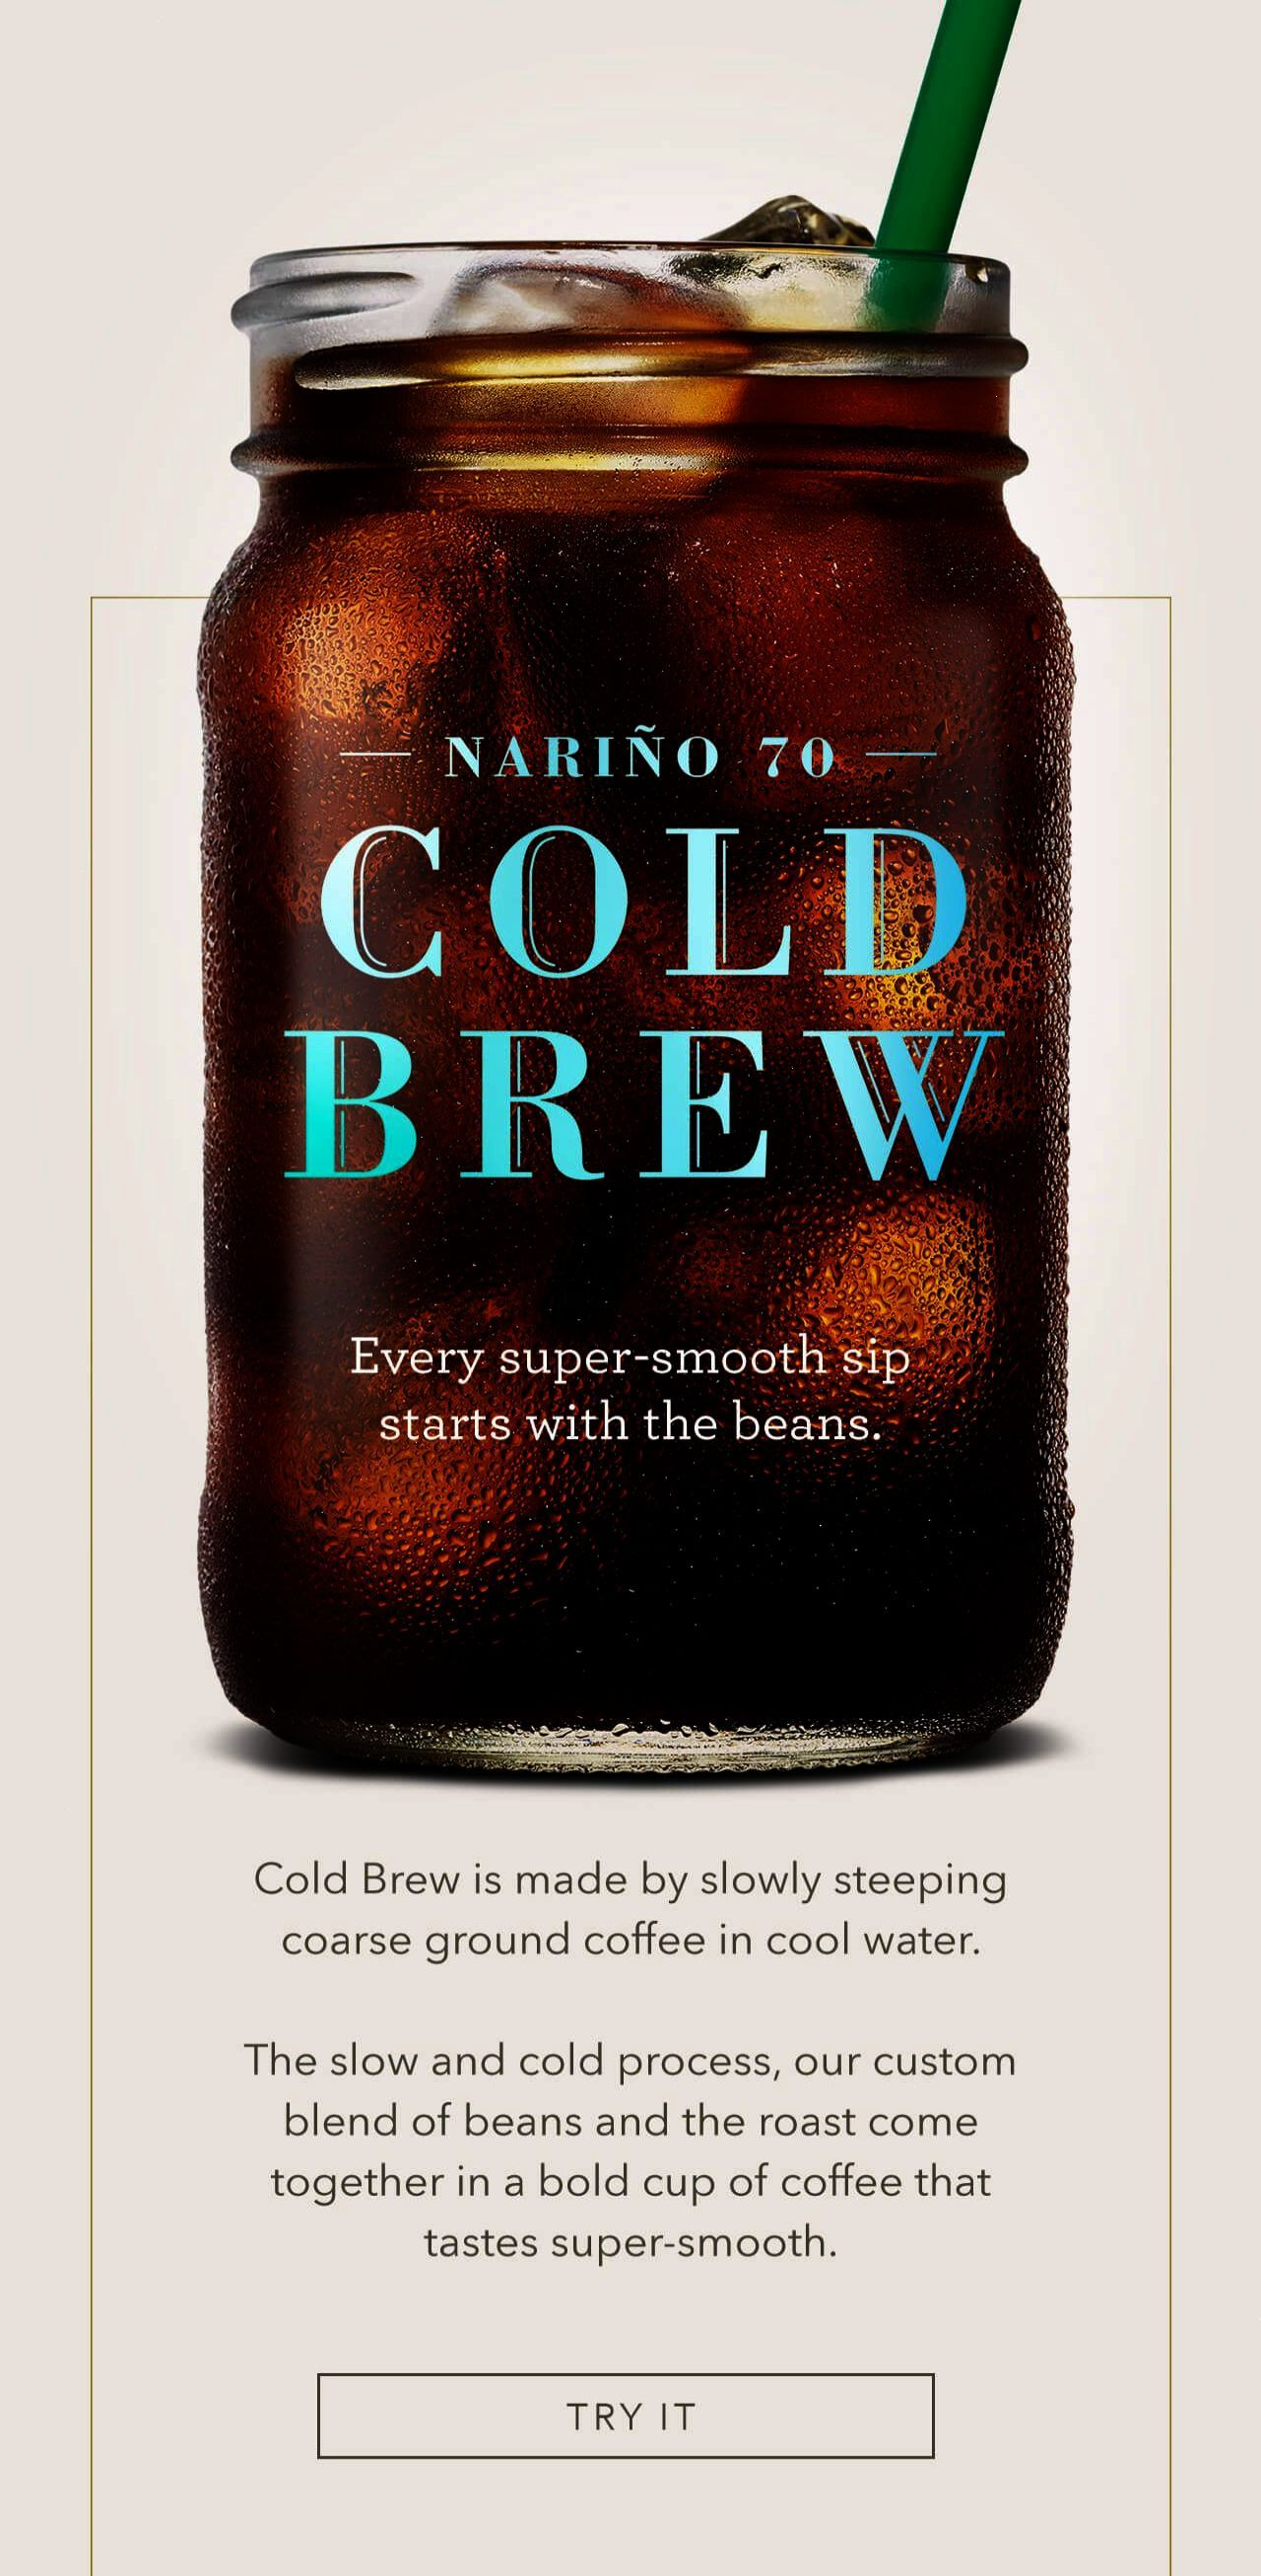 Nariño 70 Cold Brew. Every supersmooth sip starts with